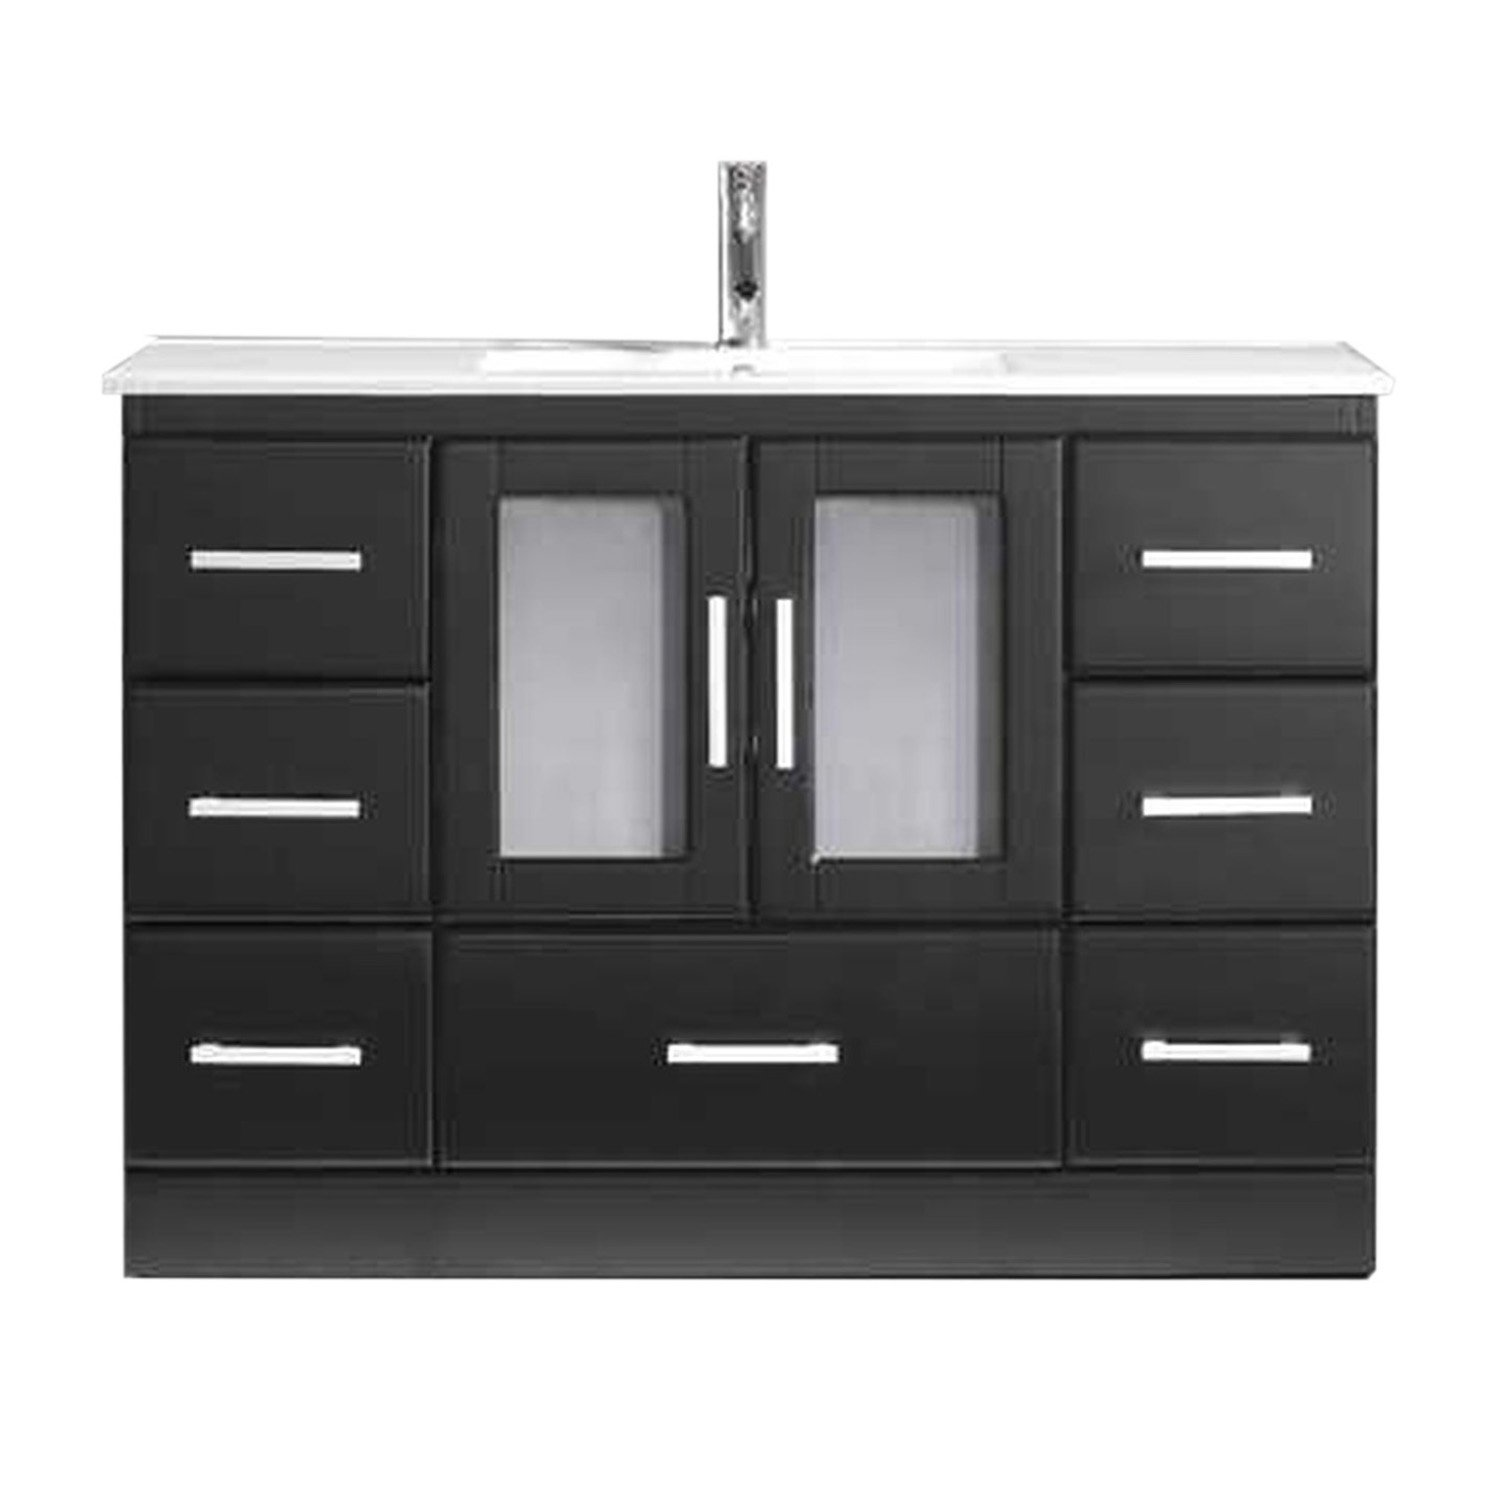 Virtu USA MS-6748-C-ES-001 Not Applicable Zola 48 inch single Bathroom Vanity In Espresso with White Ceramic Top & Square Sink with Brushed Nickel Faucet & Mirror